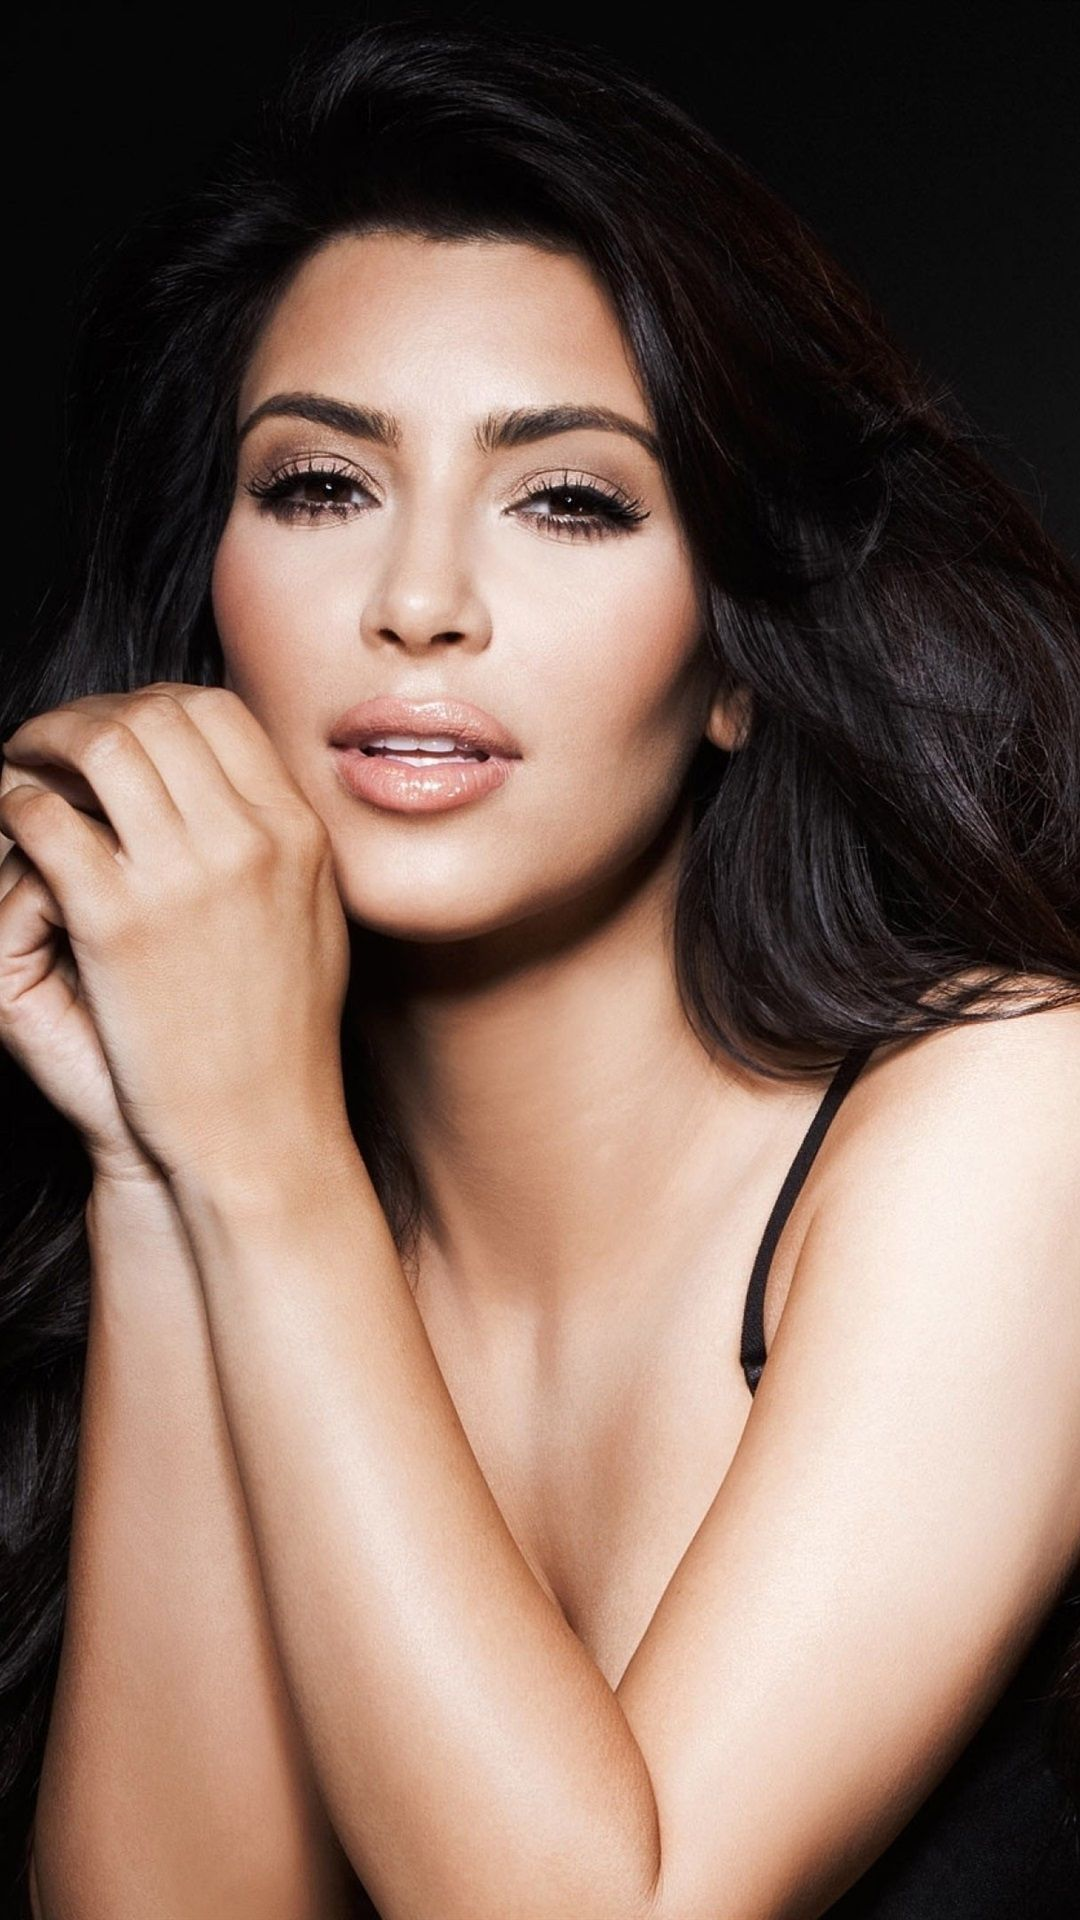 Kim Kardashian Wallpaper Iphone In 2020 Kim Kardashian Wallpaper Kim Kardashian Kim Kardashian Full